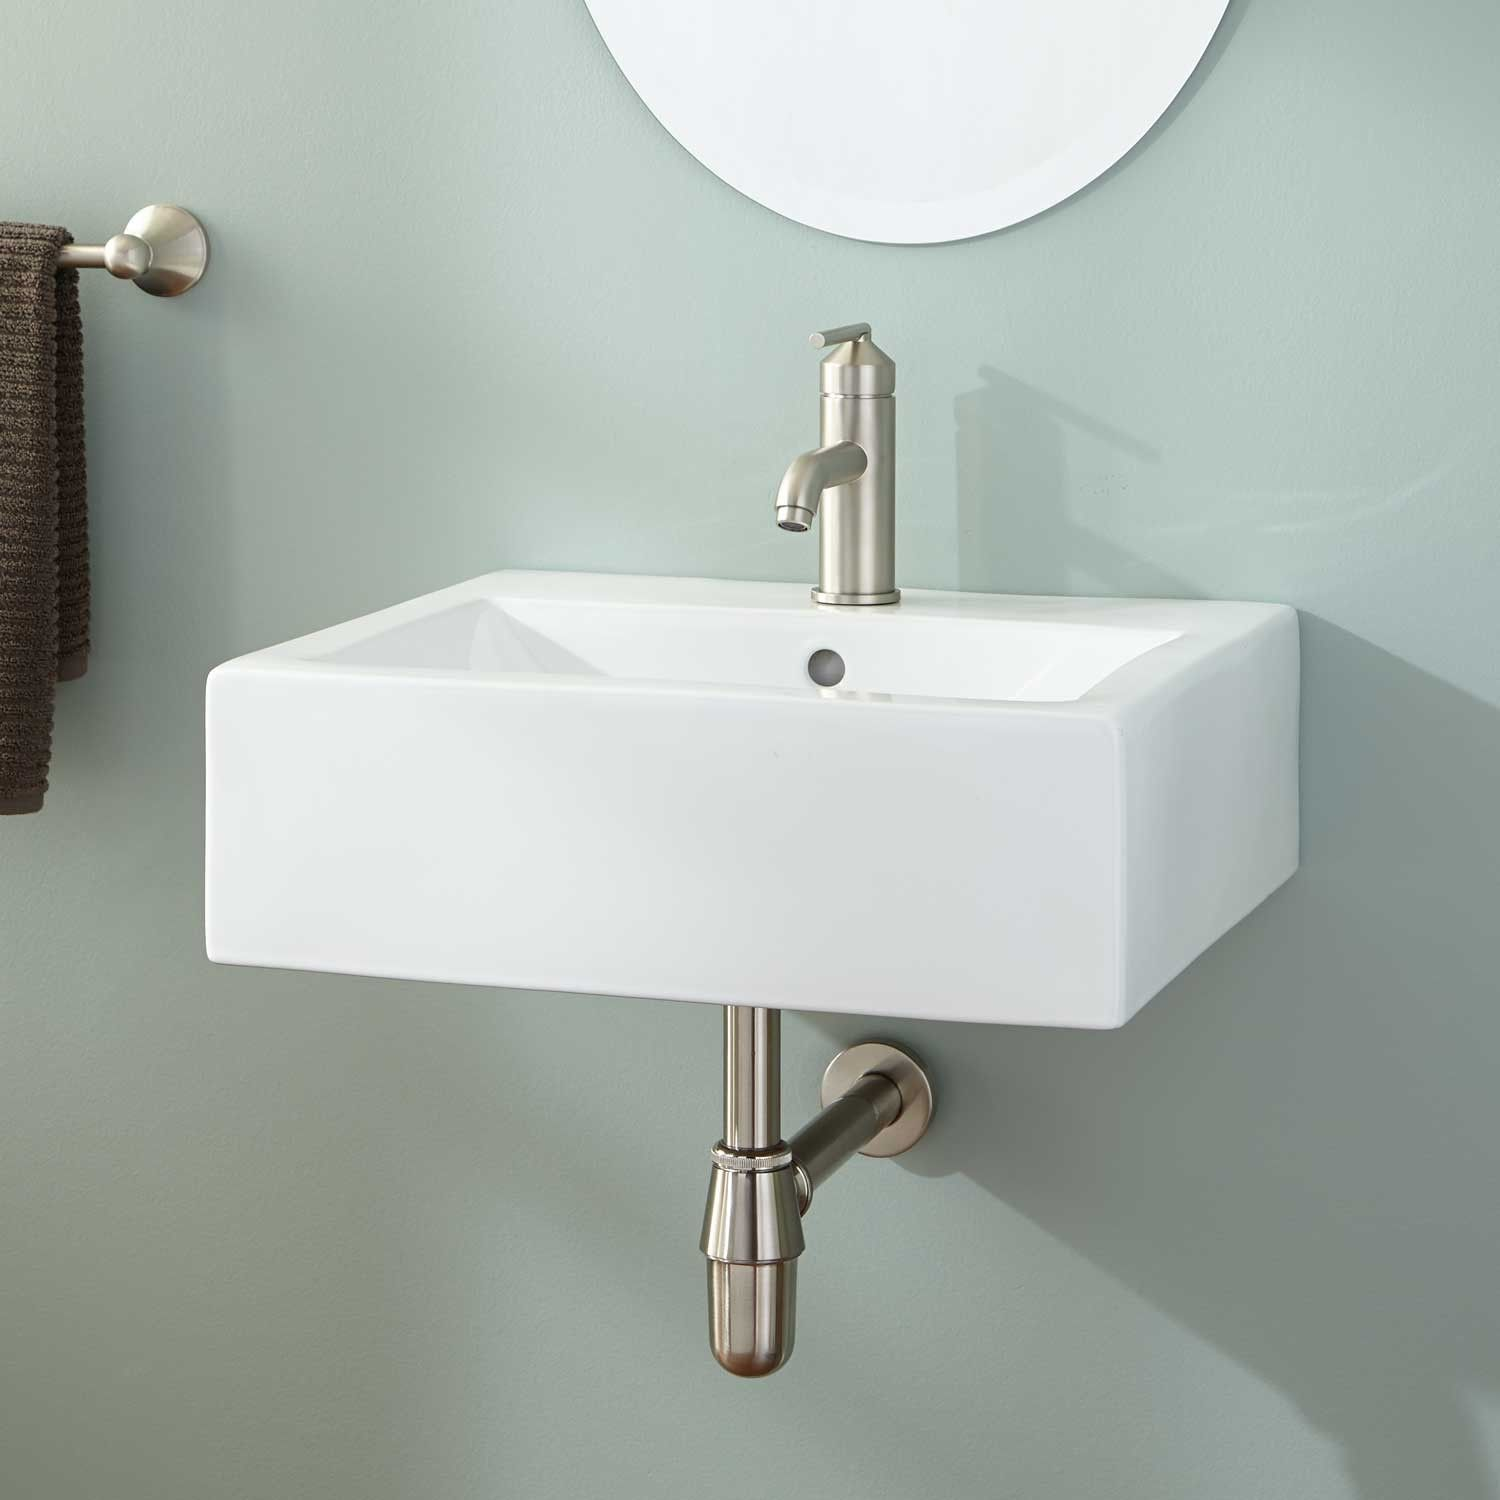 Bwood Wall Mount Sink 20 X 18